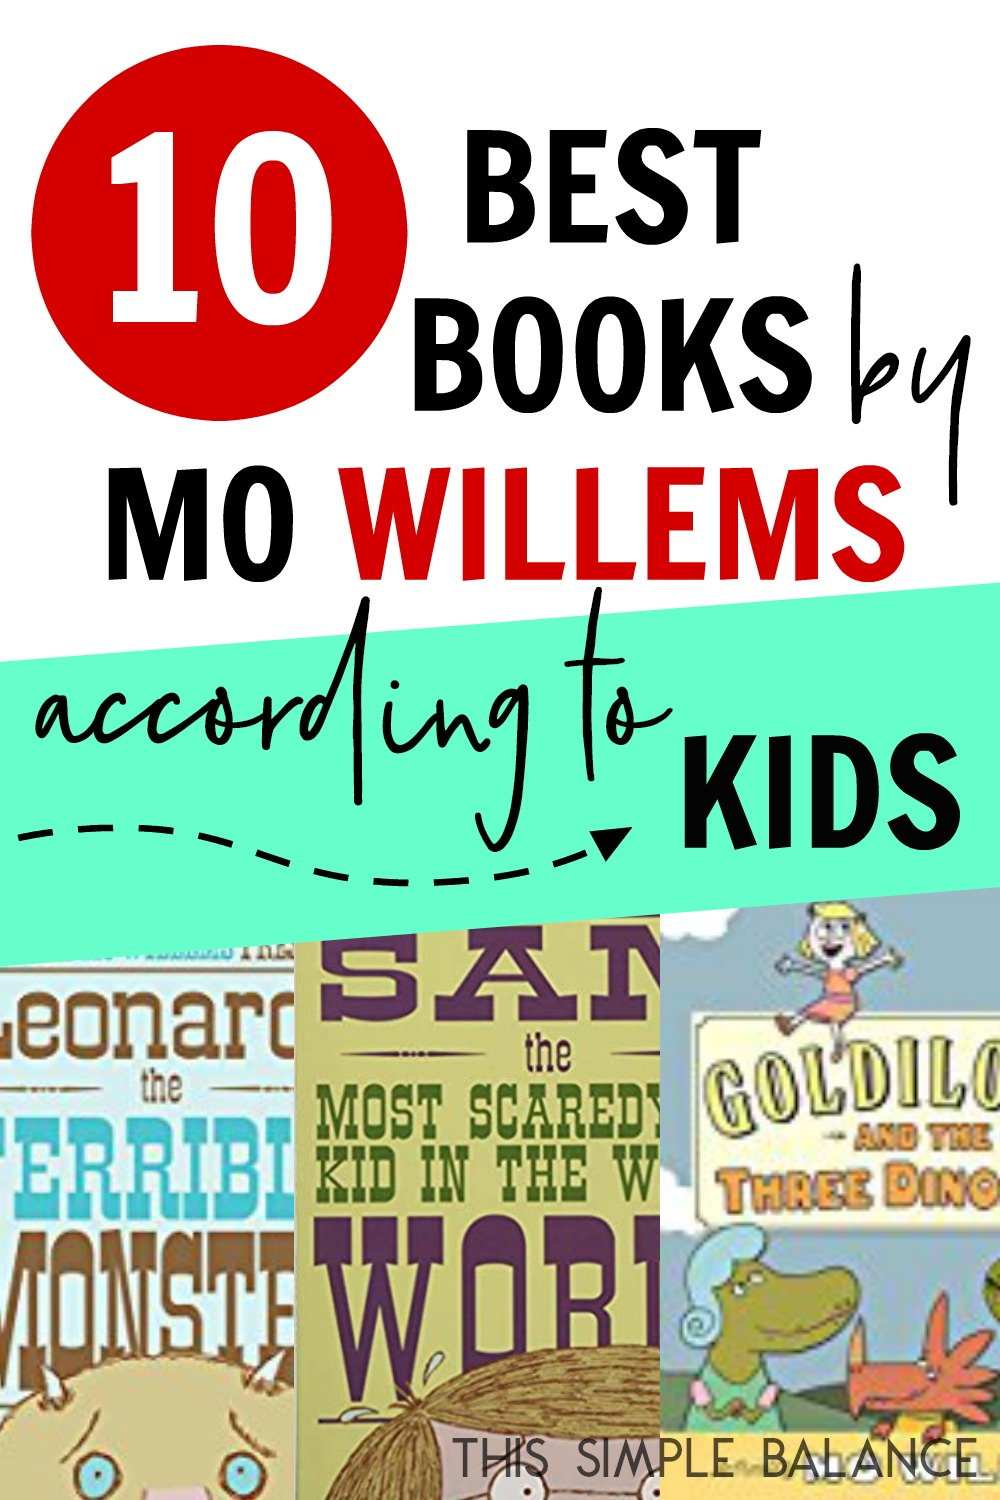 The Best Mo Willems Books (according to kids)